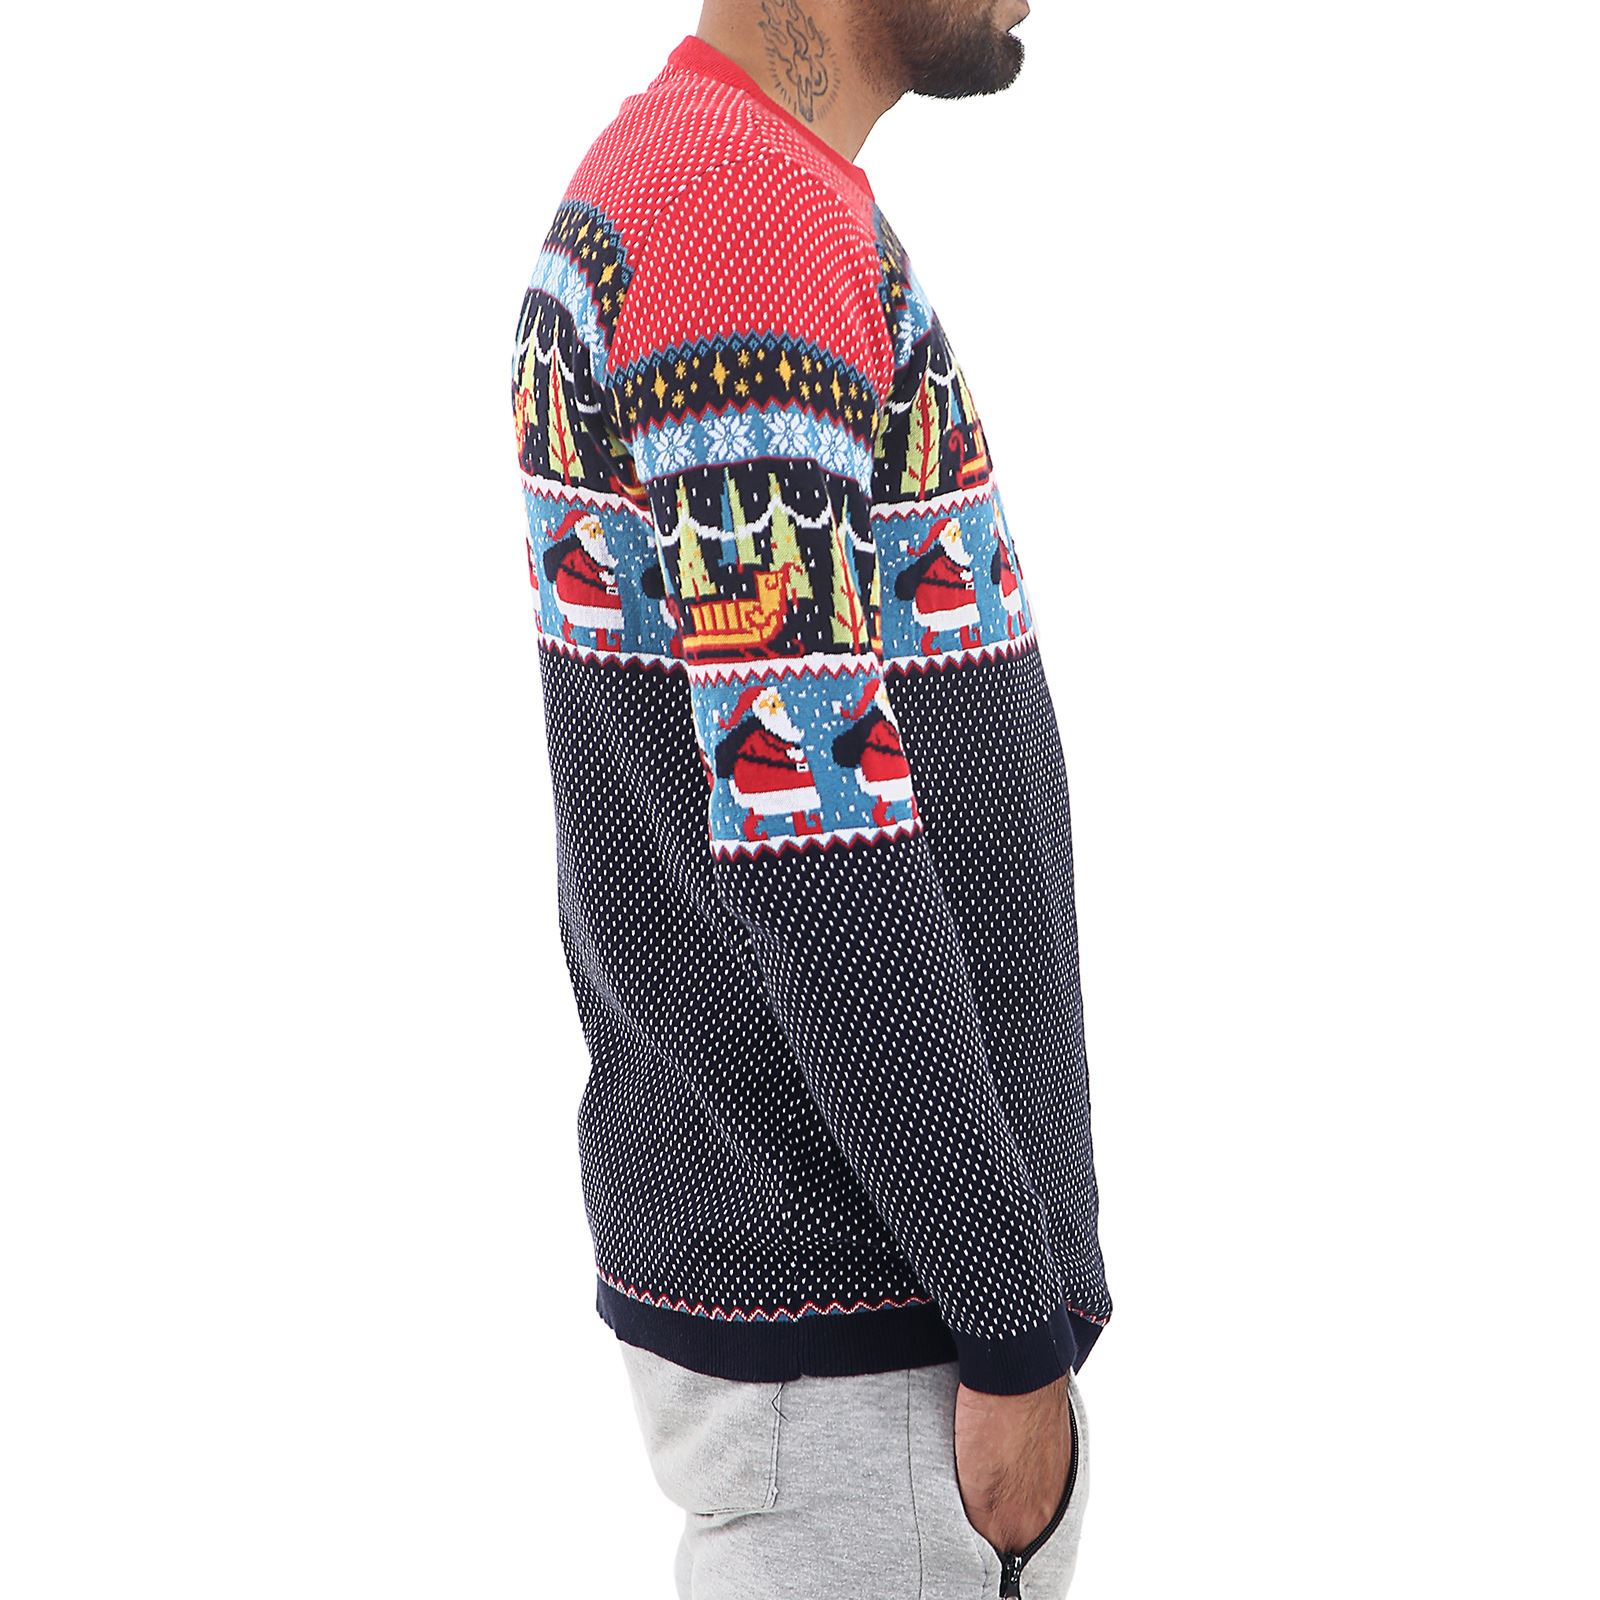 Mens-Ladies-Ex-Store-Matching-Christmas-Sweater-Jumper-Sweatshirt-Xmas-His-Hers thumbnail 6